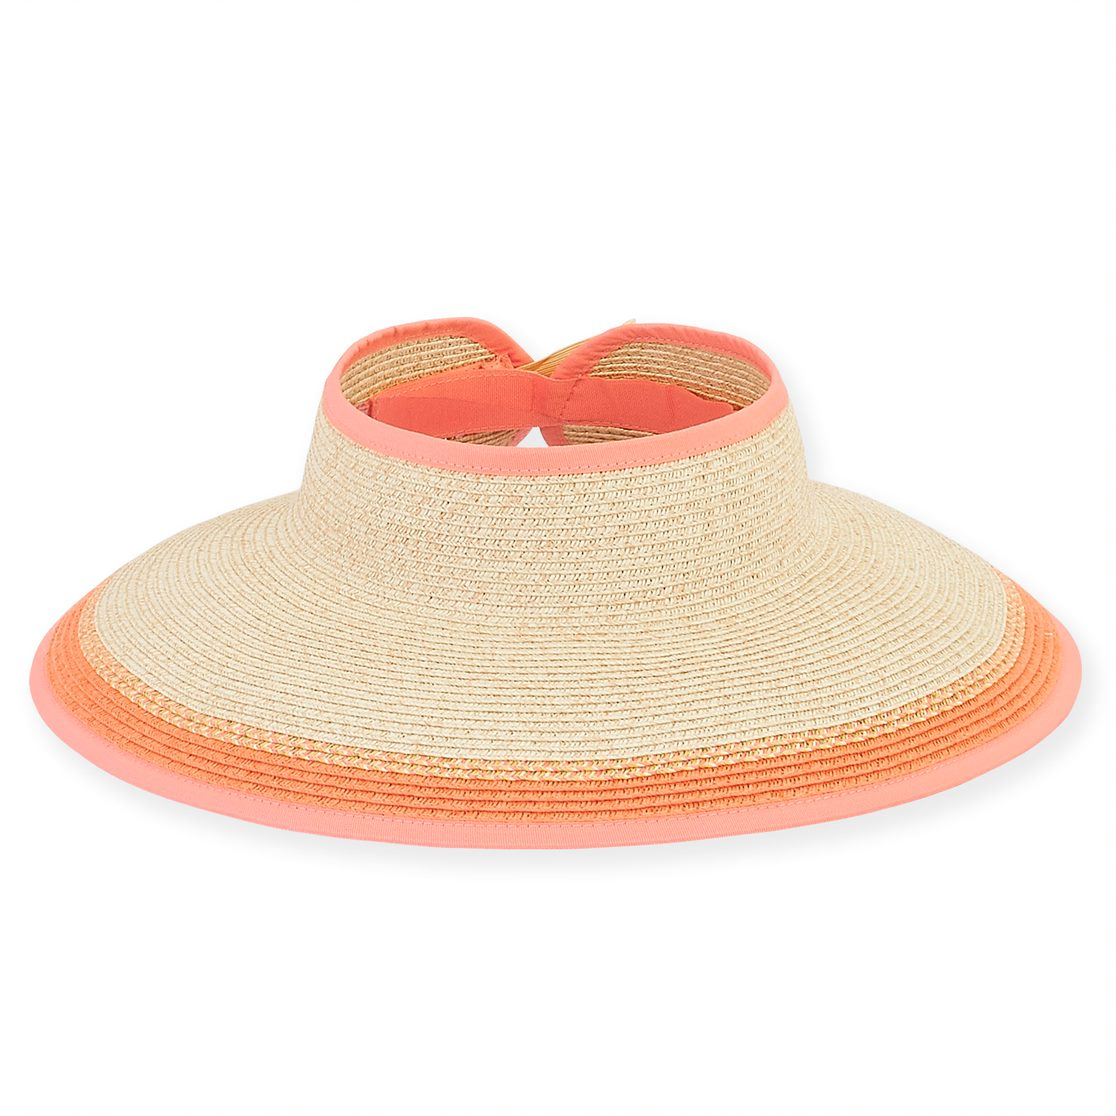 Trim Roll Up Beach Visor